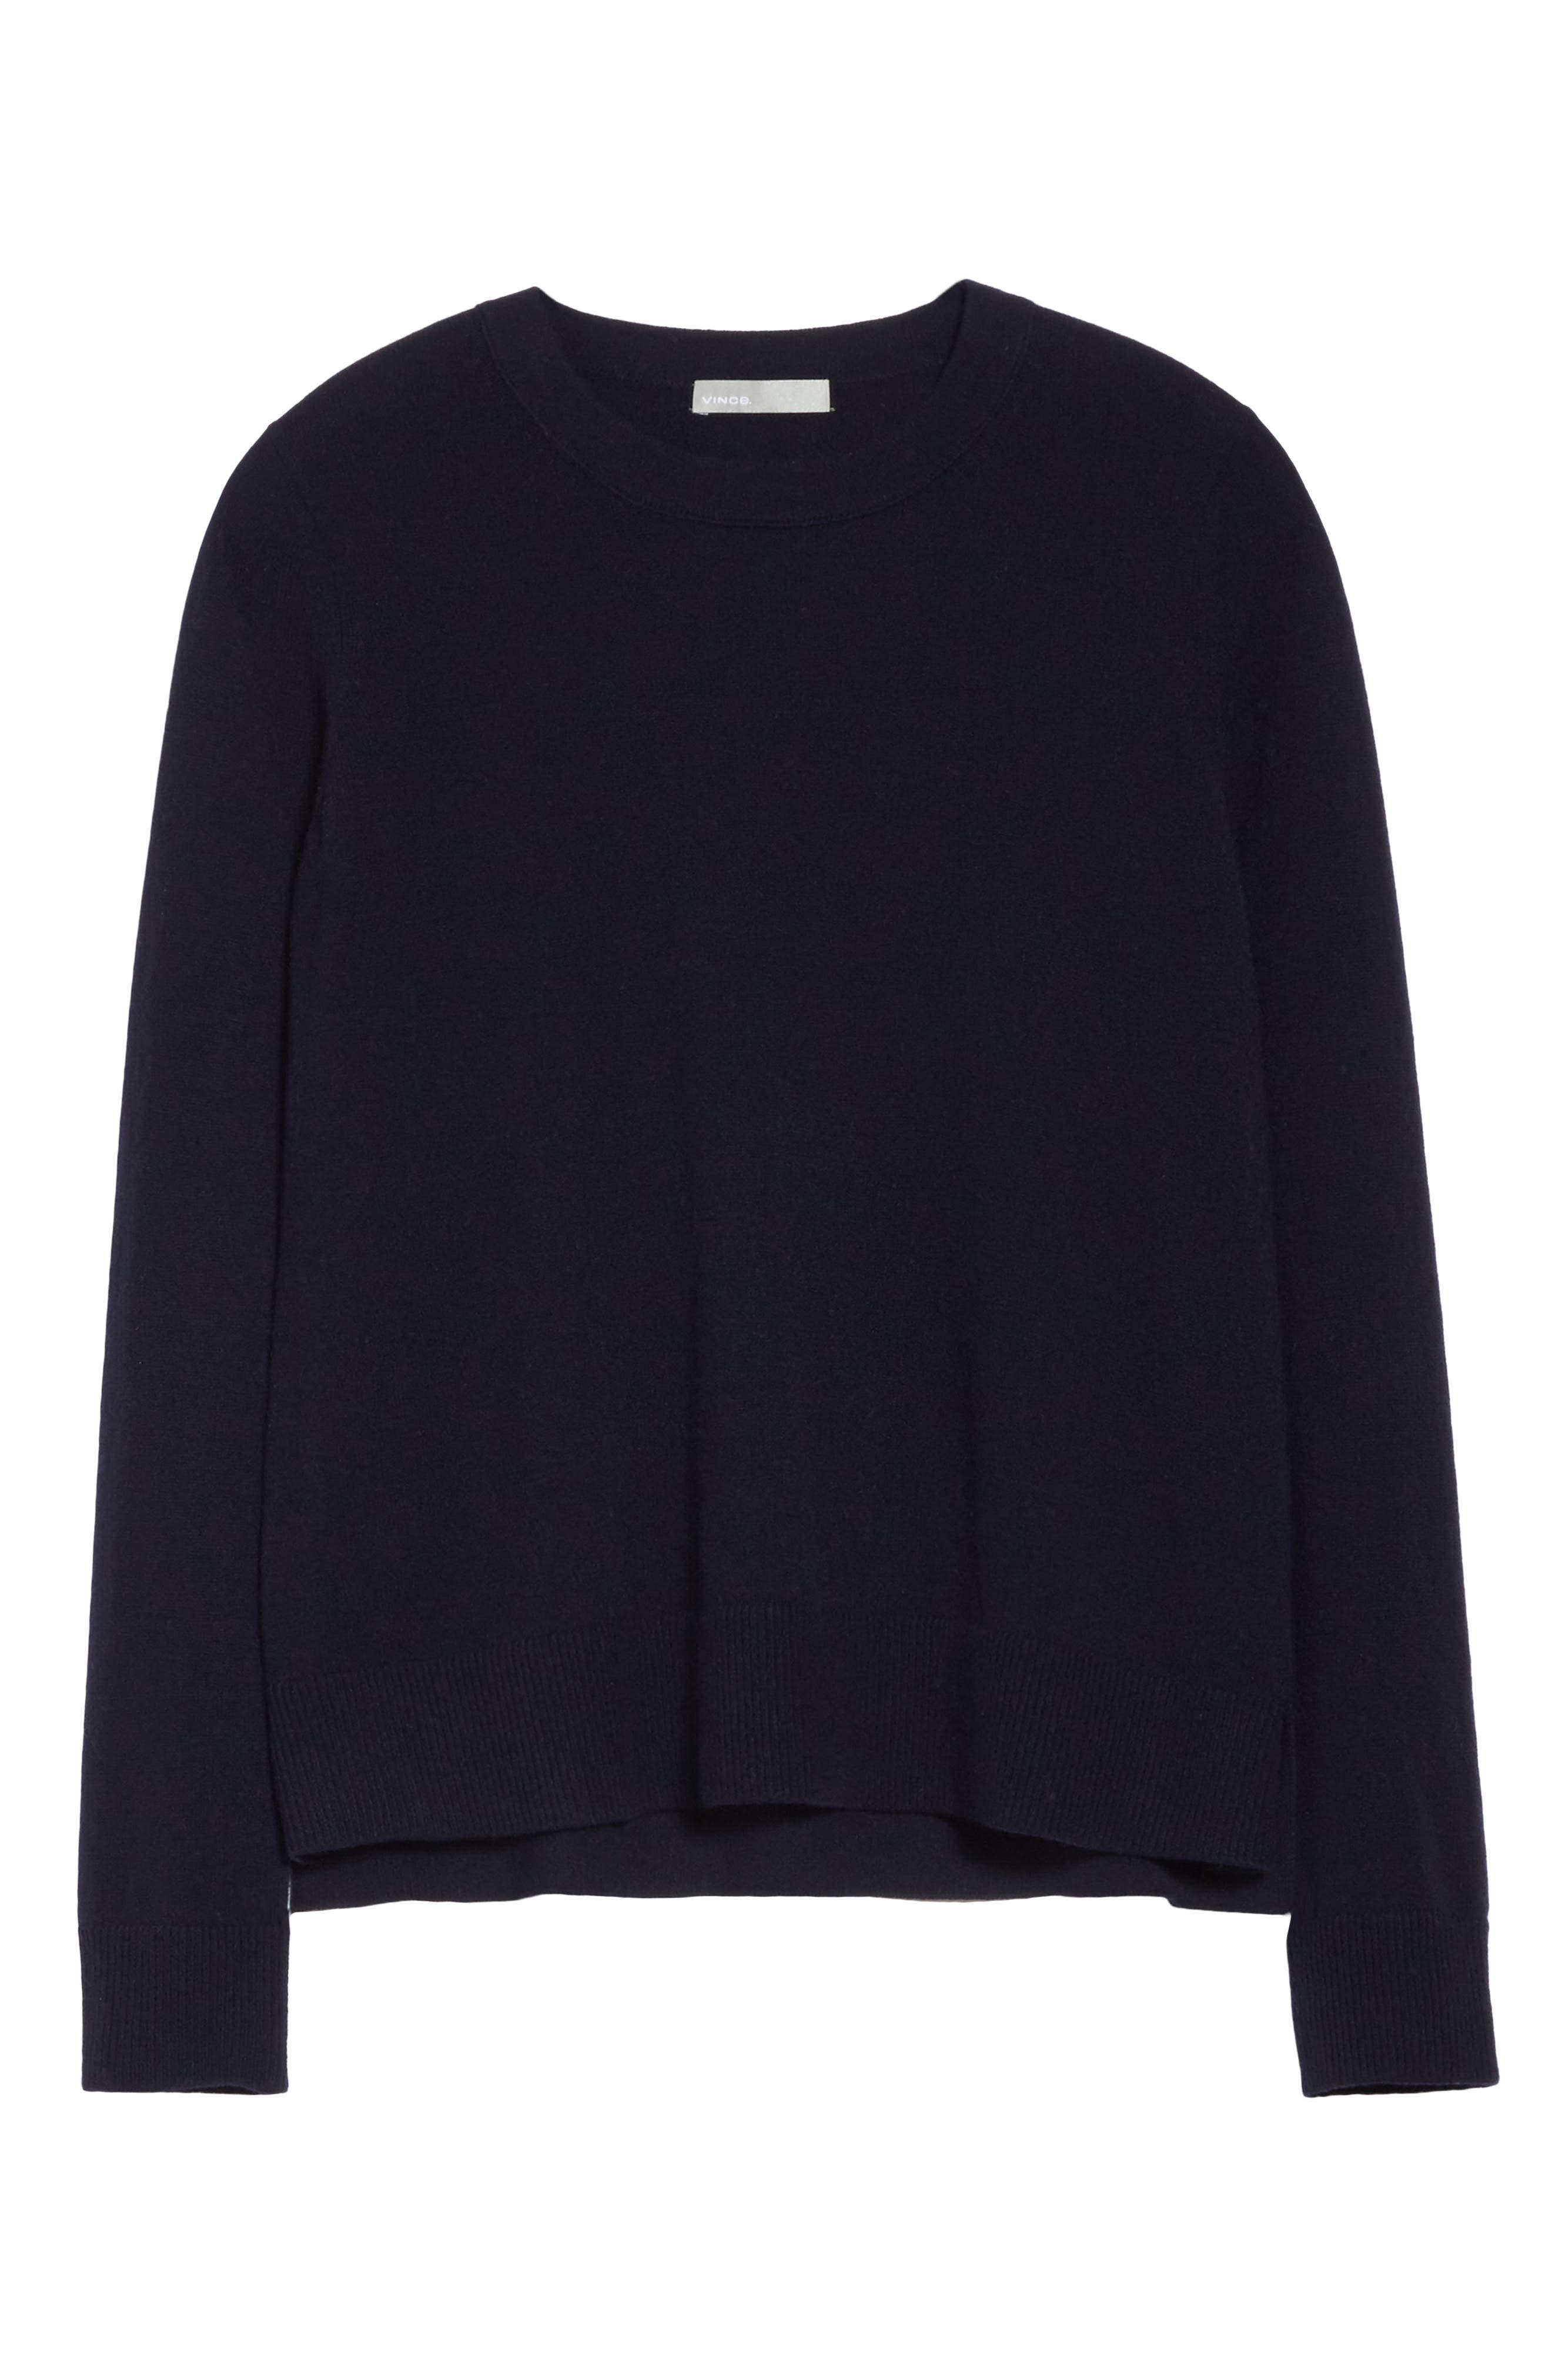 Cashmere Sweater,                             Alternate thumbnail 17, color,